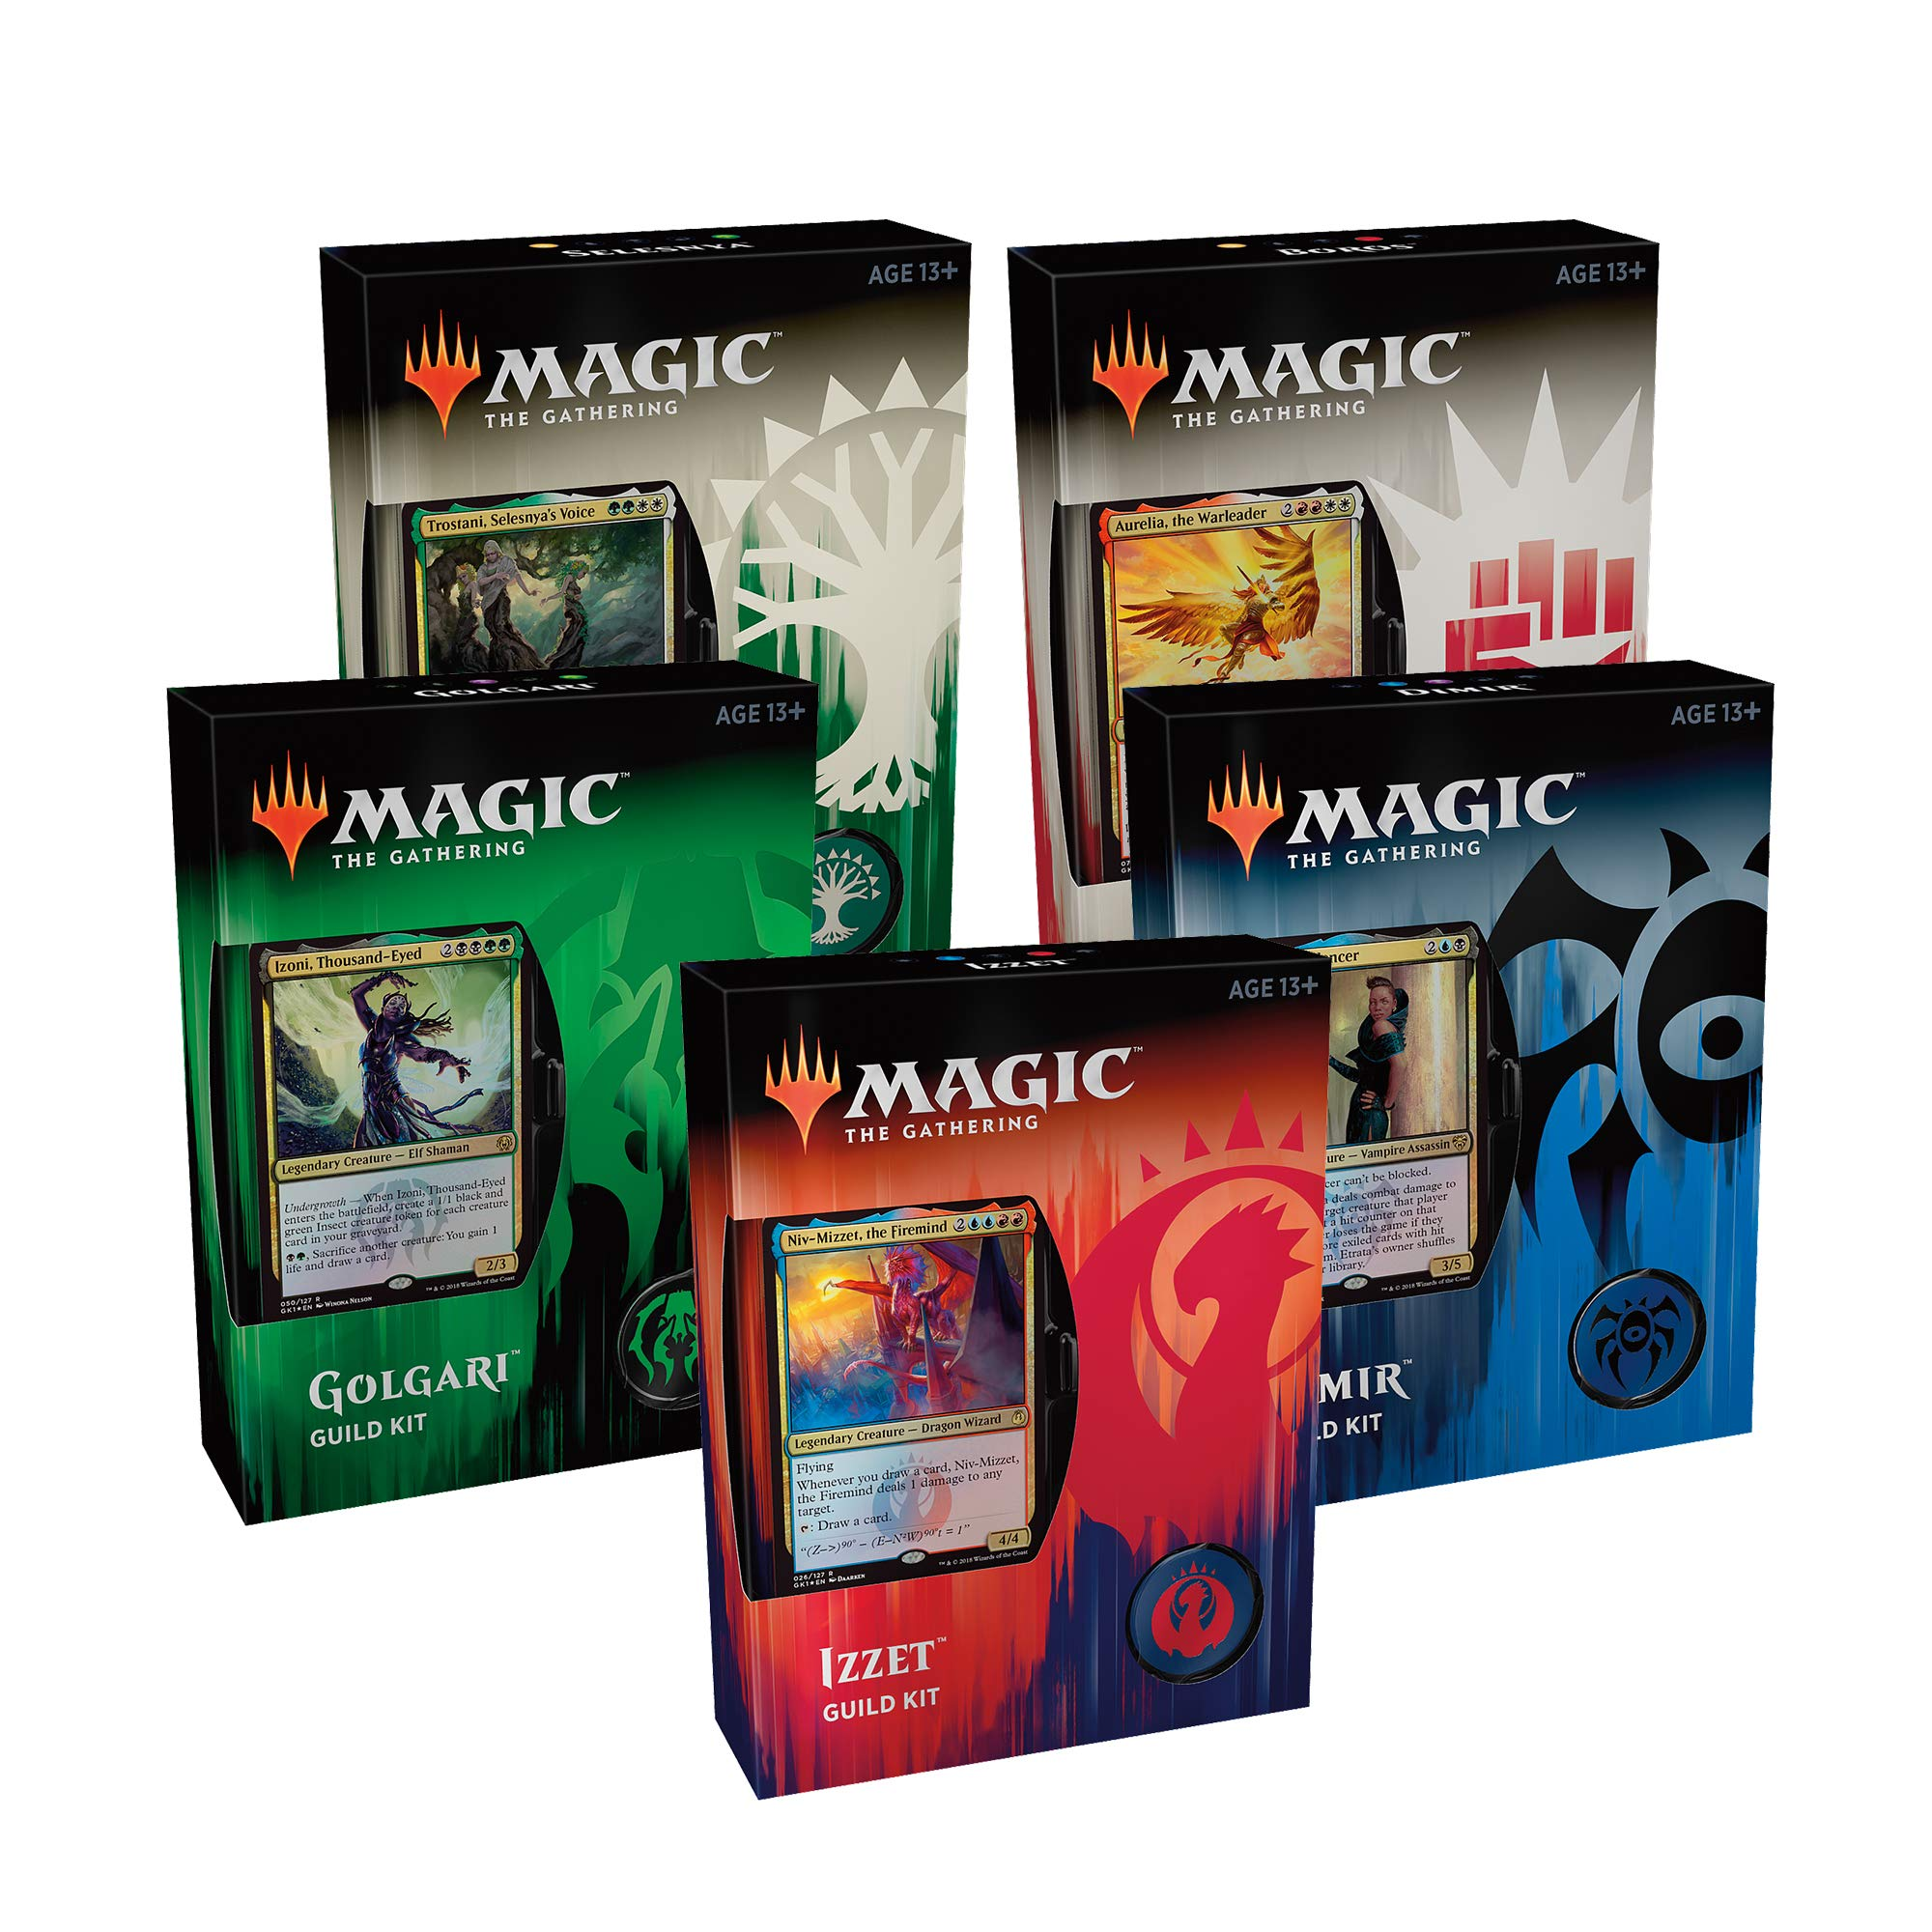 Magic: The Gathering Guilds of Ravnica Guild Kits | 5 Ready-to-Play 60-Card Decks | Accessories | Factory Sealed